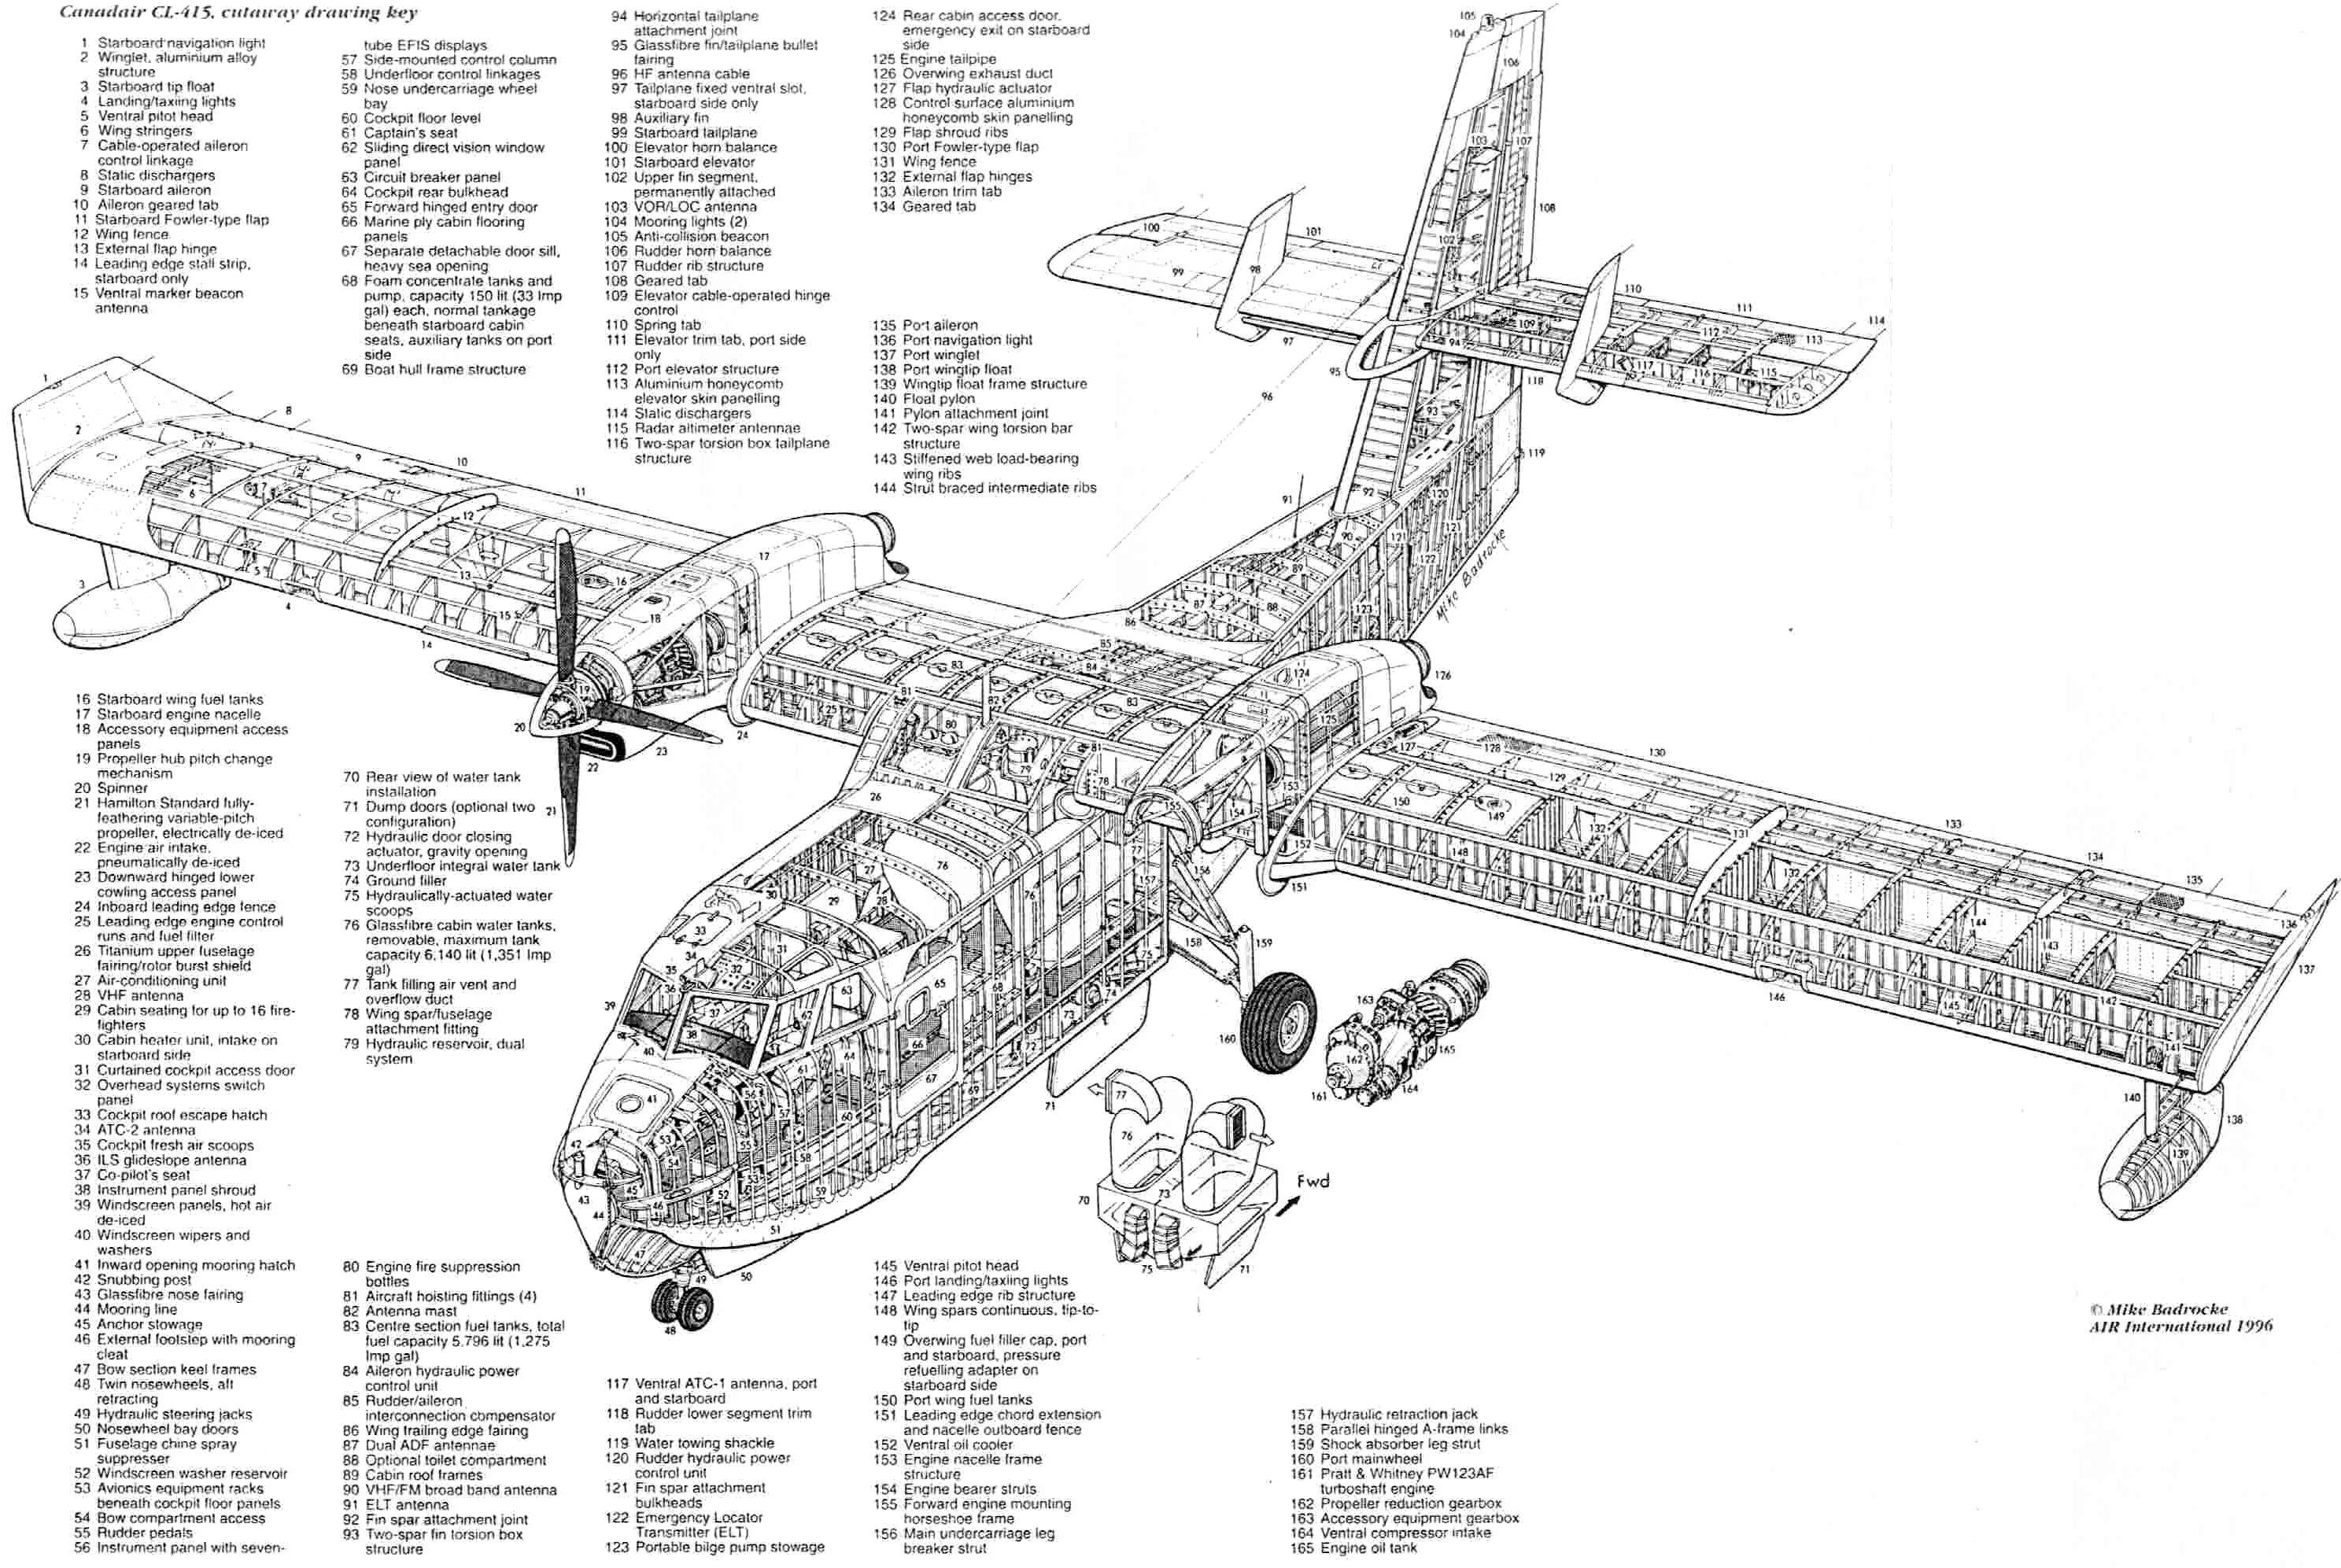 Pin by Travis Rodgers on Historical Vehicles | Aircraft